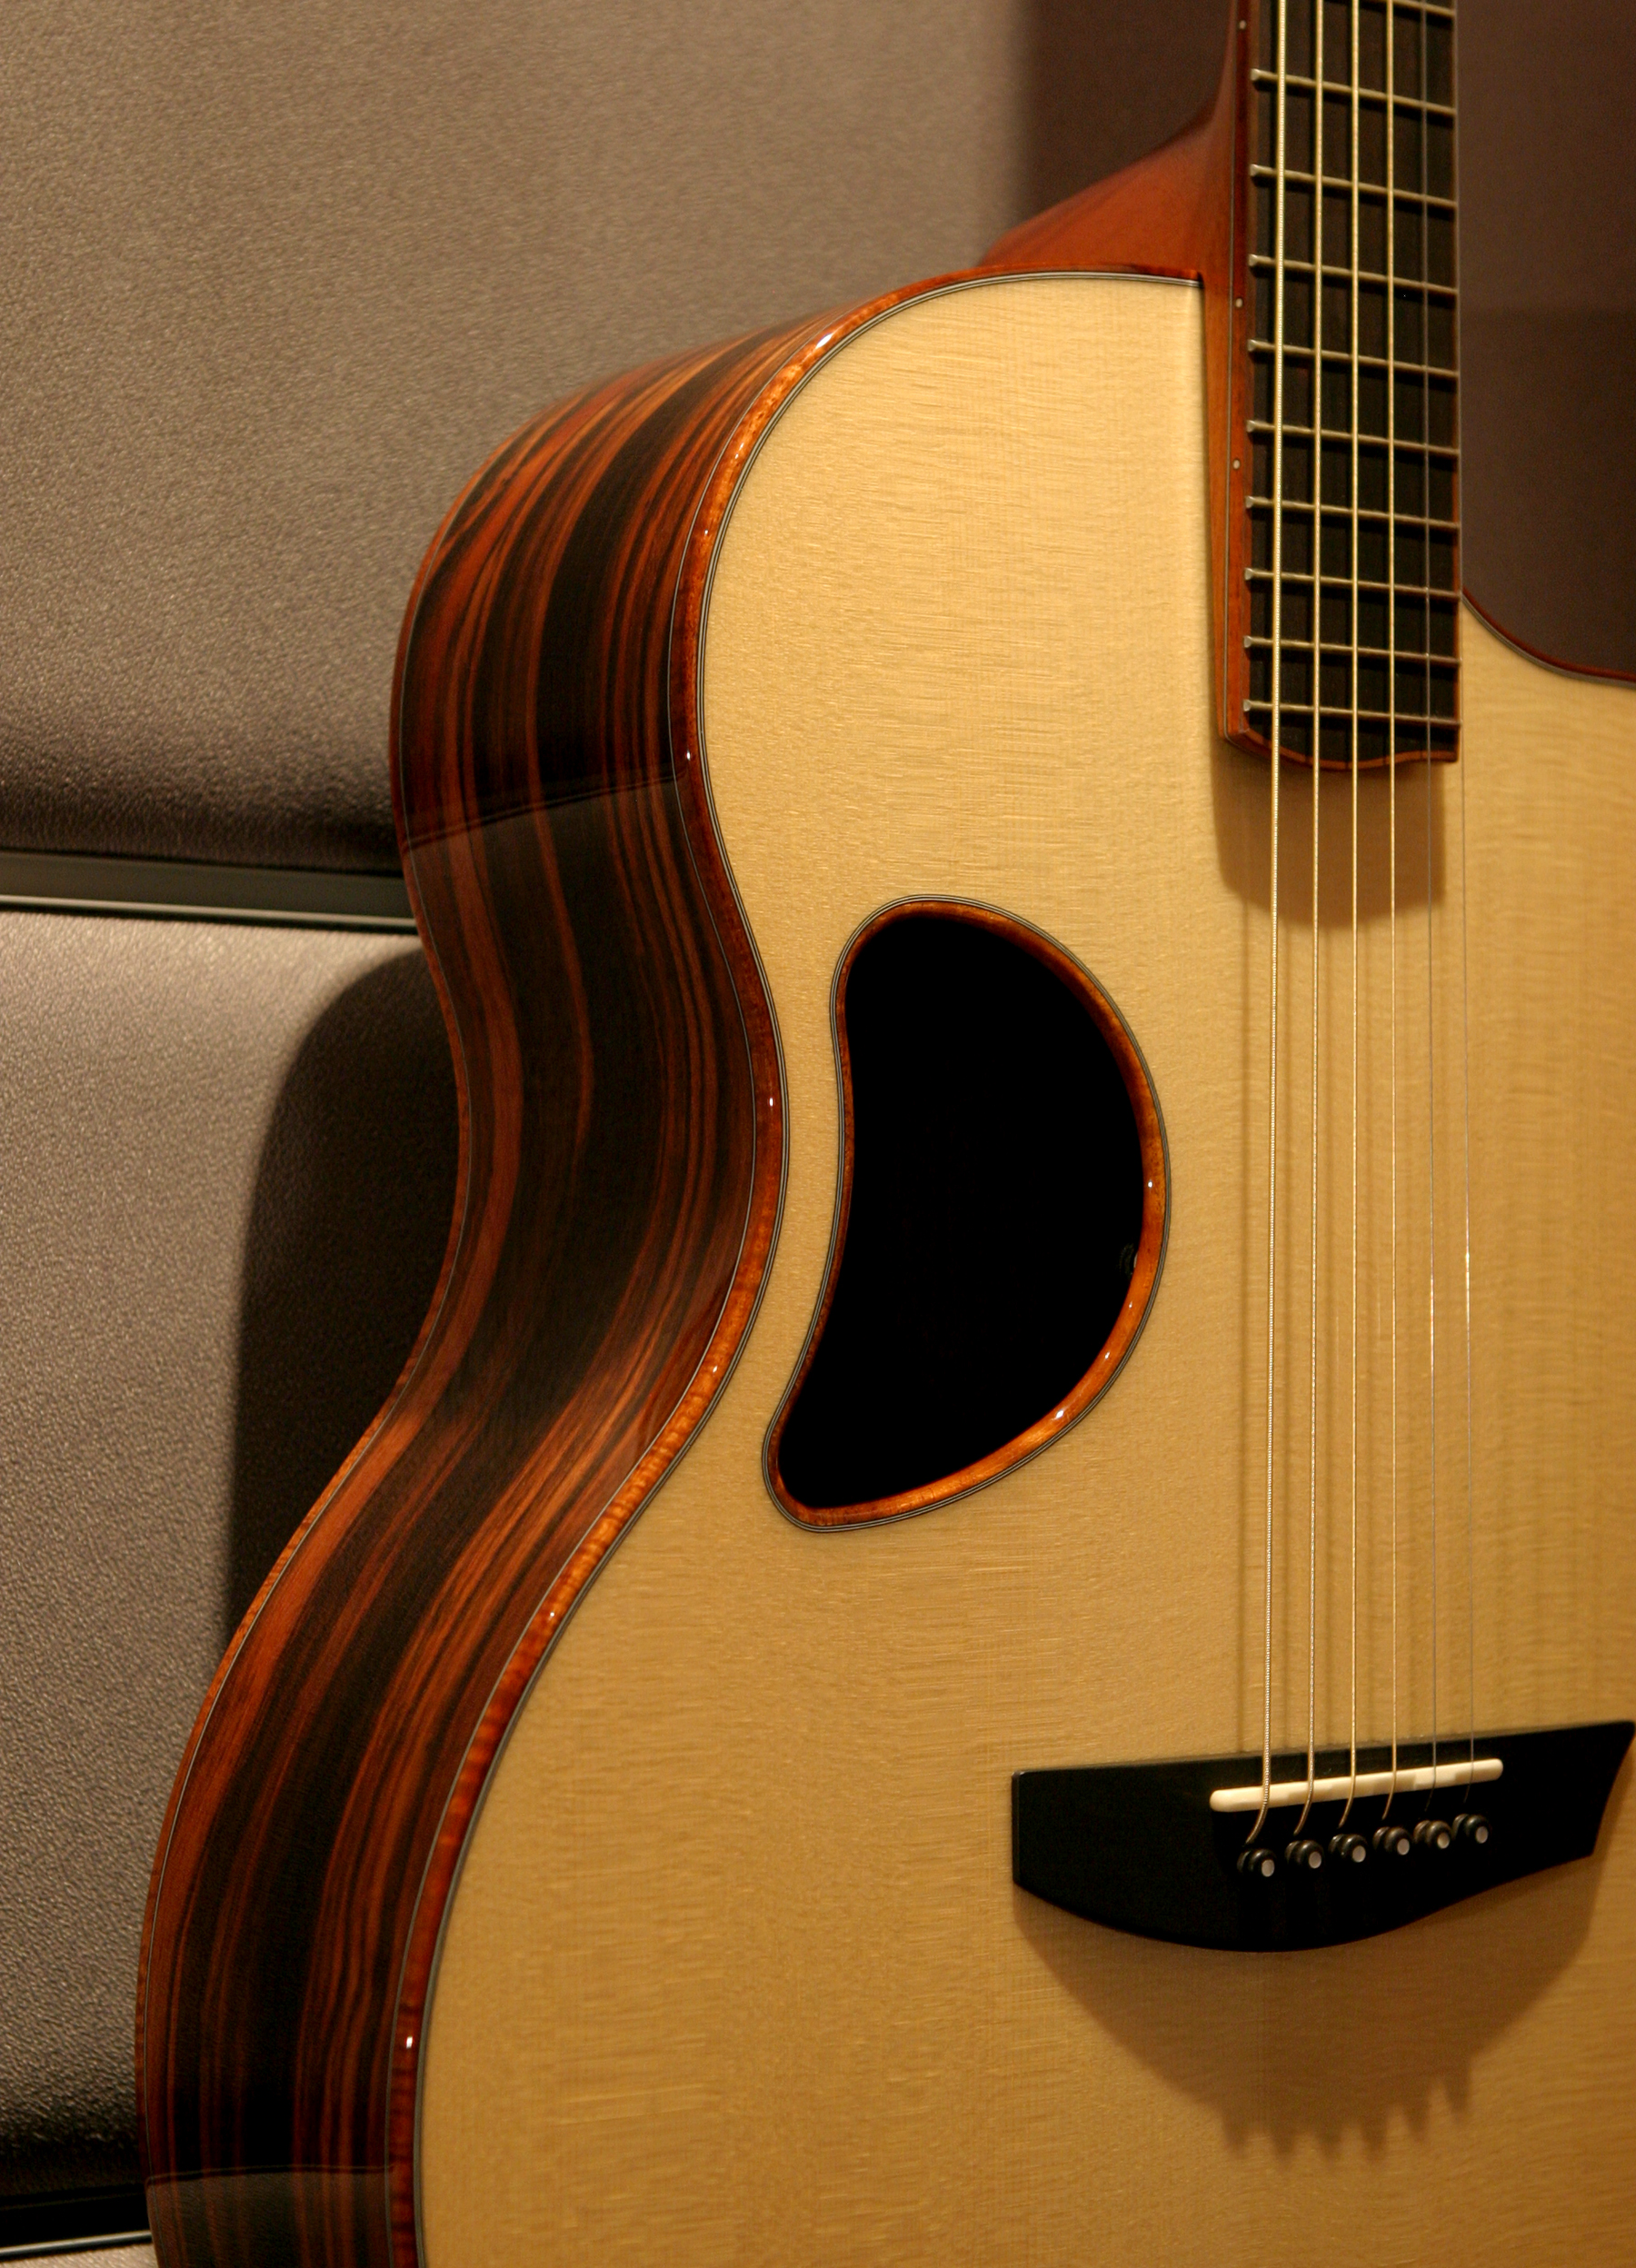 Mcpherson Offset Soundhole Technology The Cavan Project